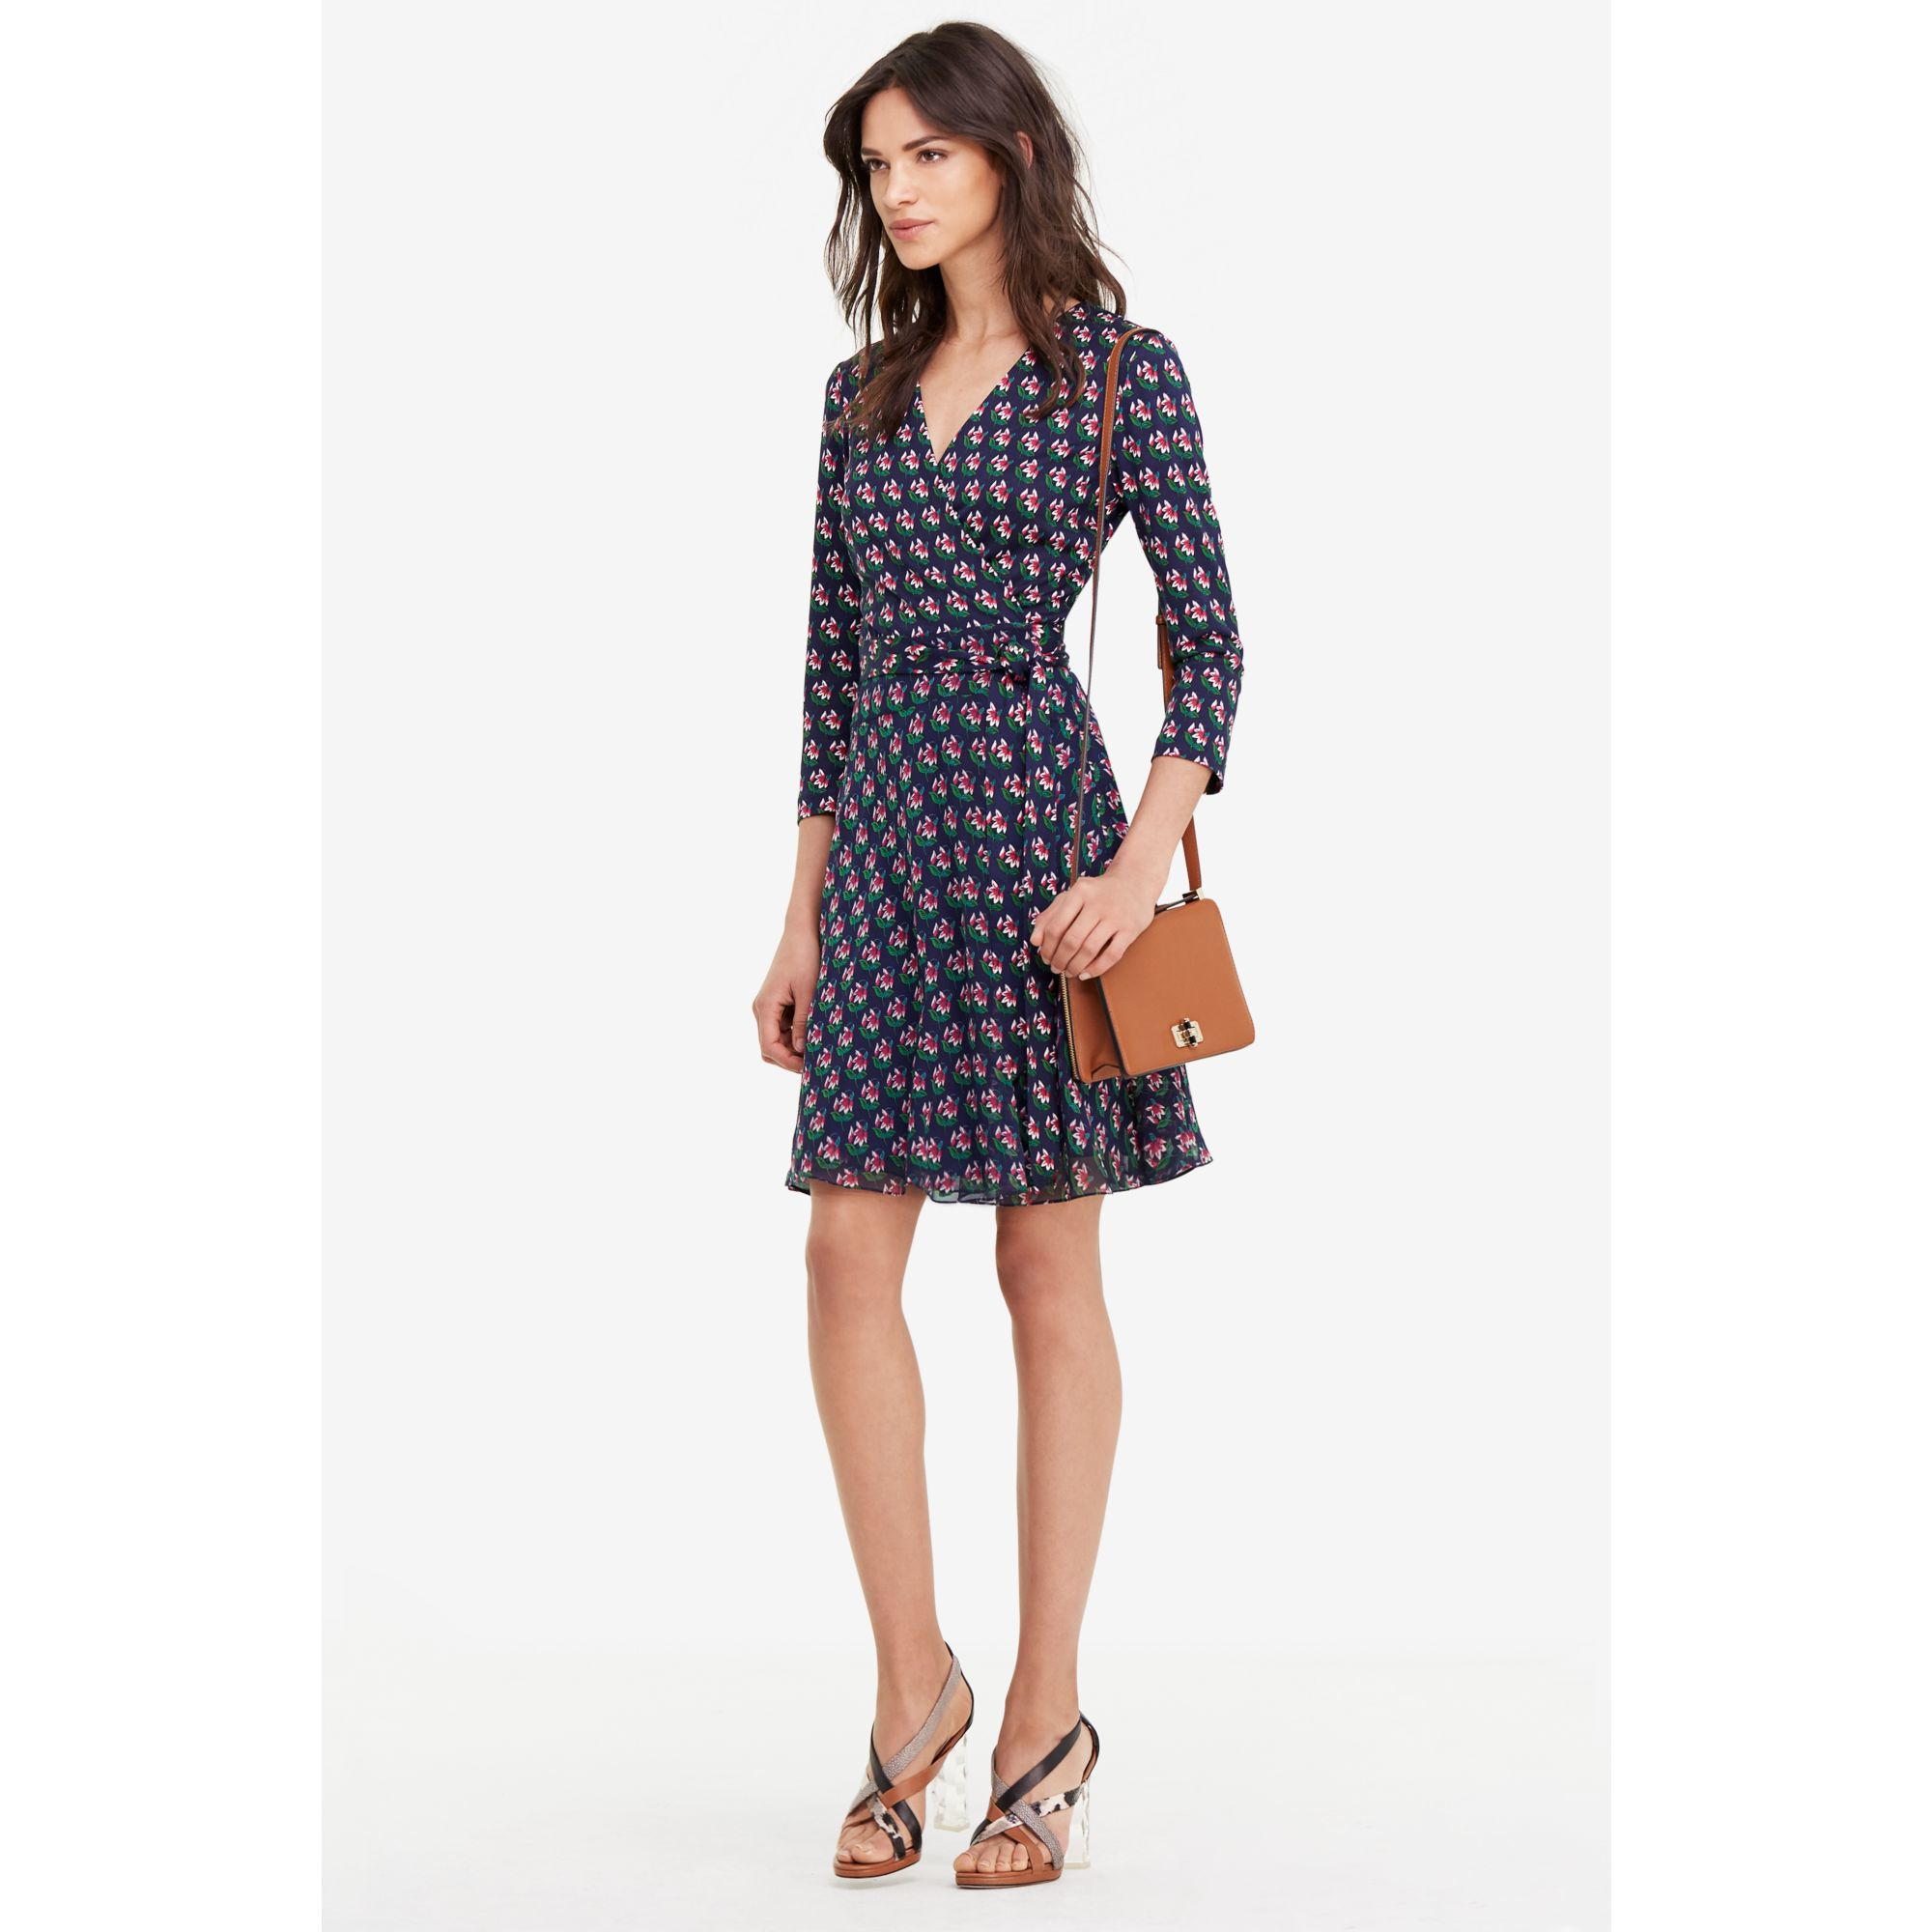 diane von furstenberg wrap dress gallery AEDCXEX